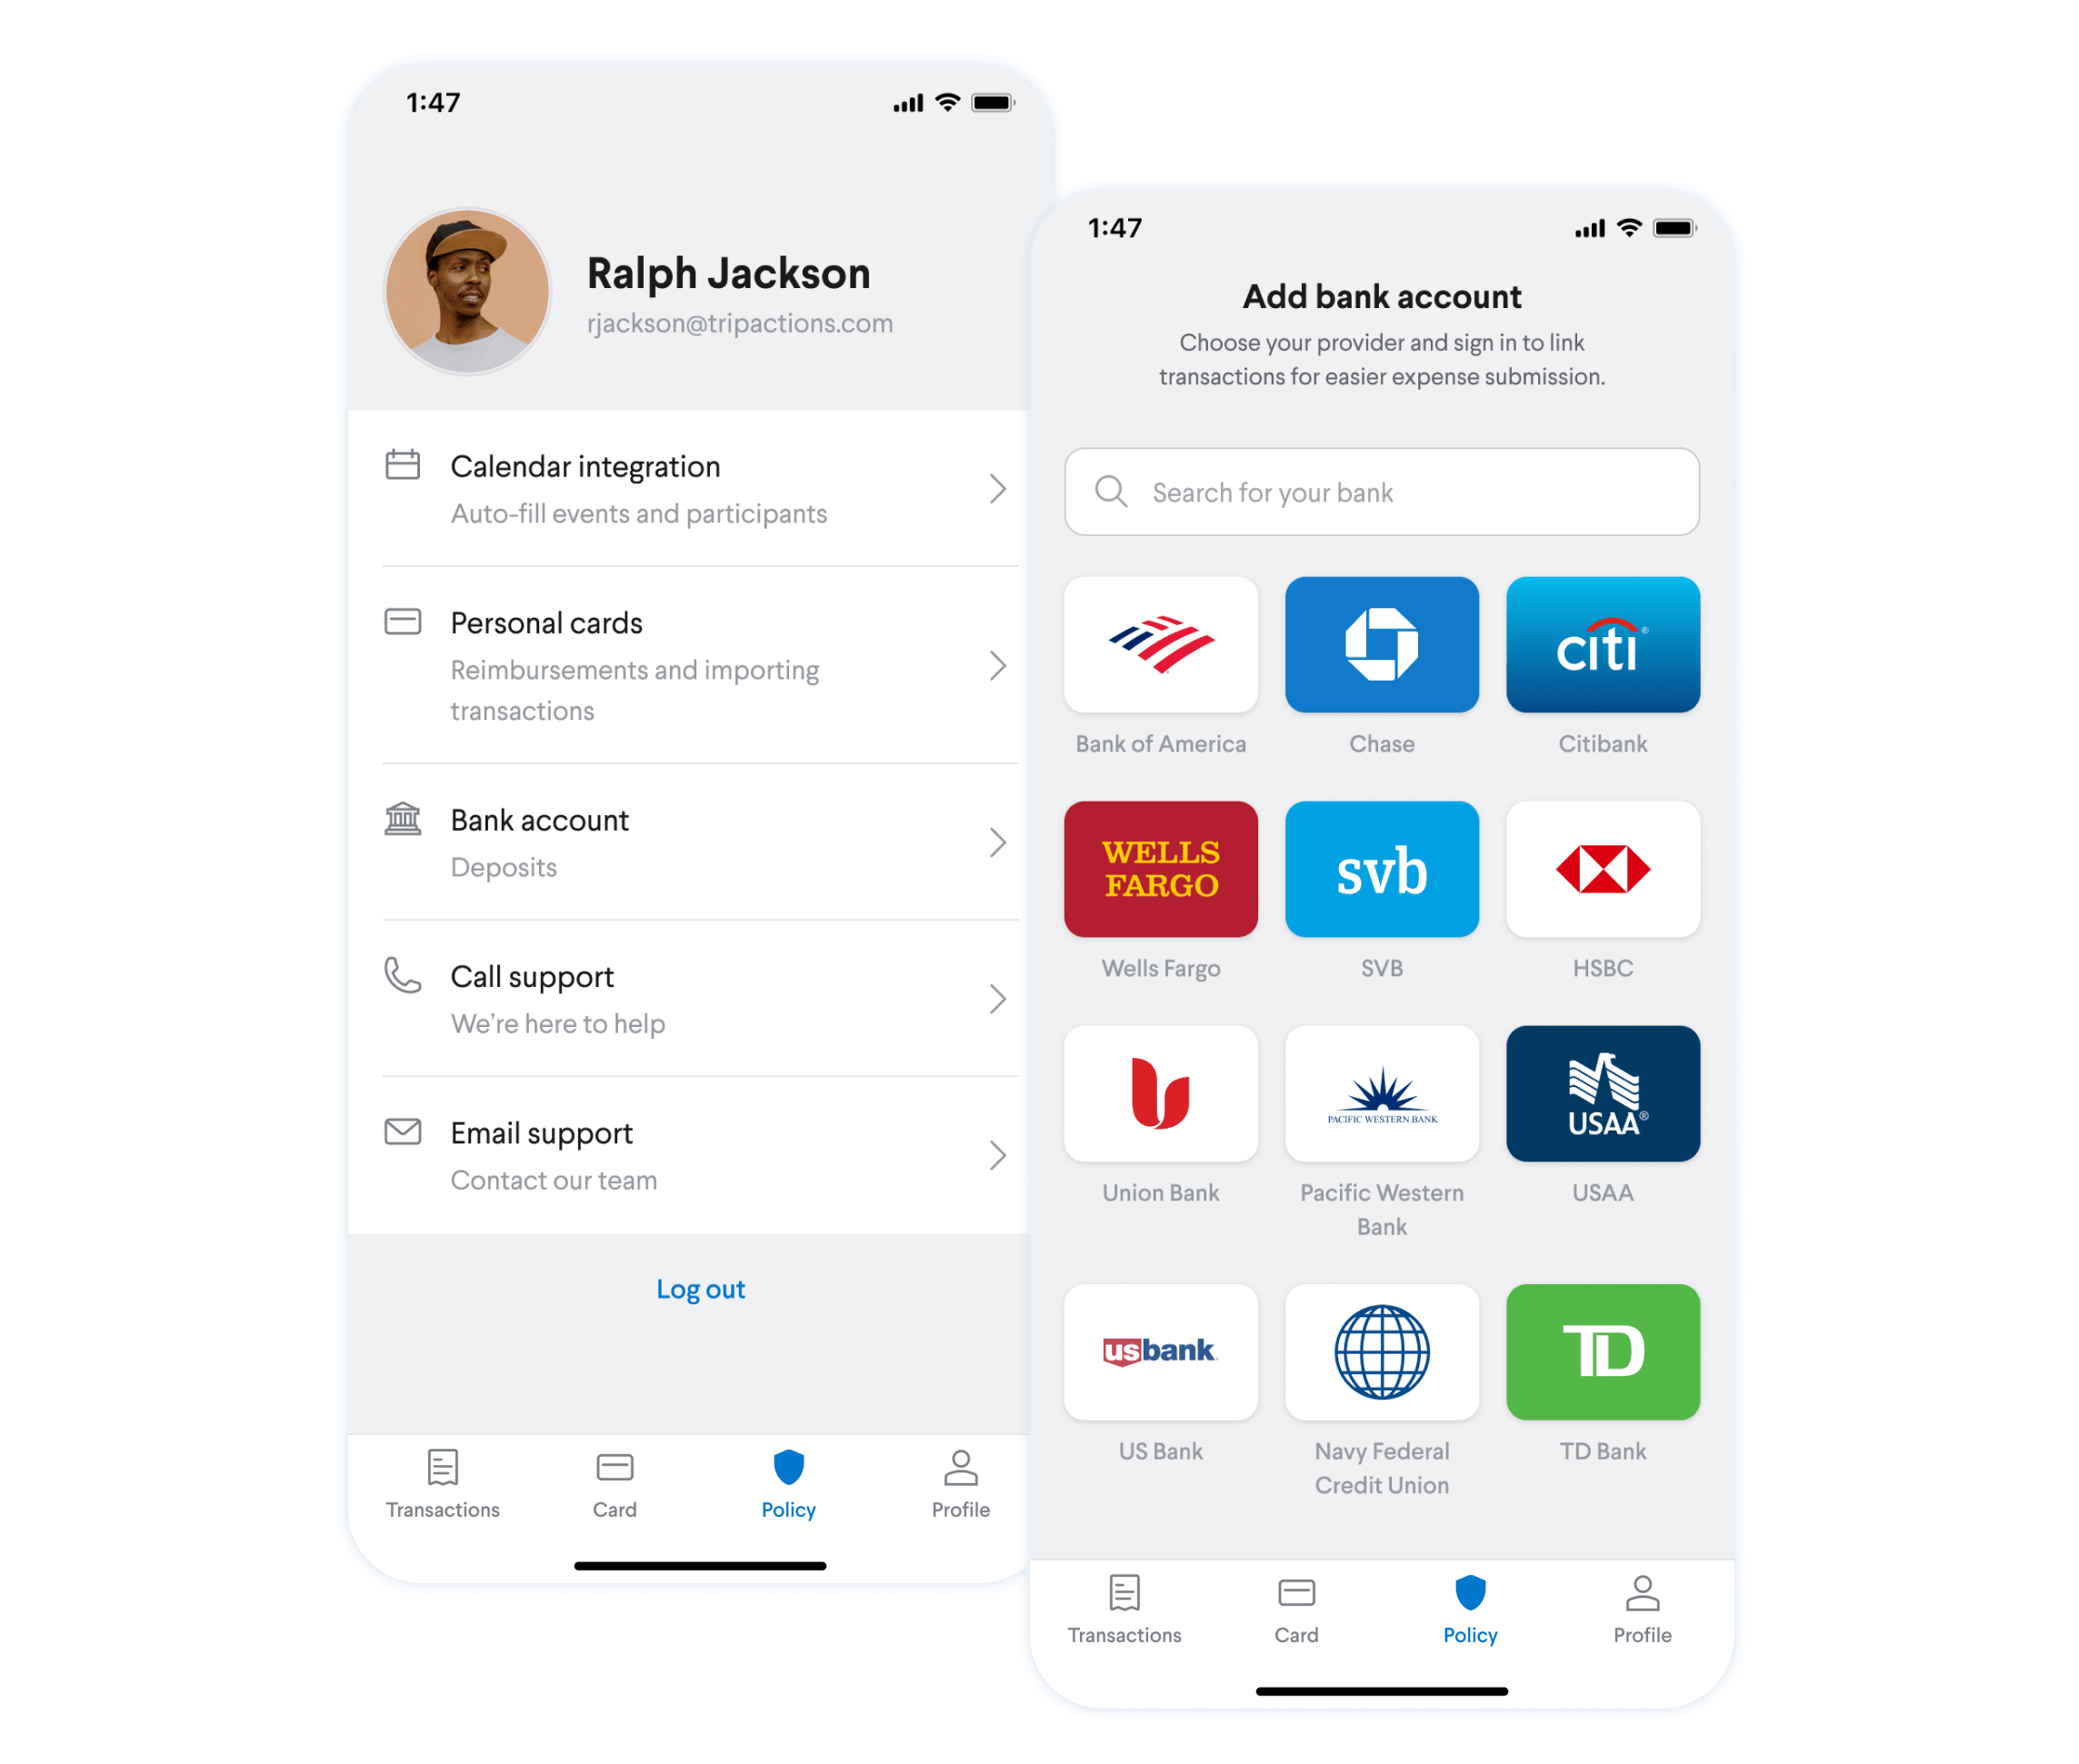 Screenshot - Showing how you can add a personal bank account within TripActions Liquid mobile app so that you can receive rapid reimbursements.